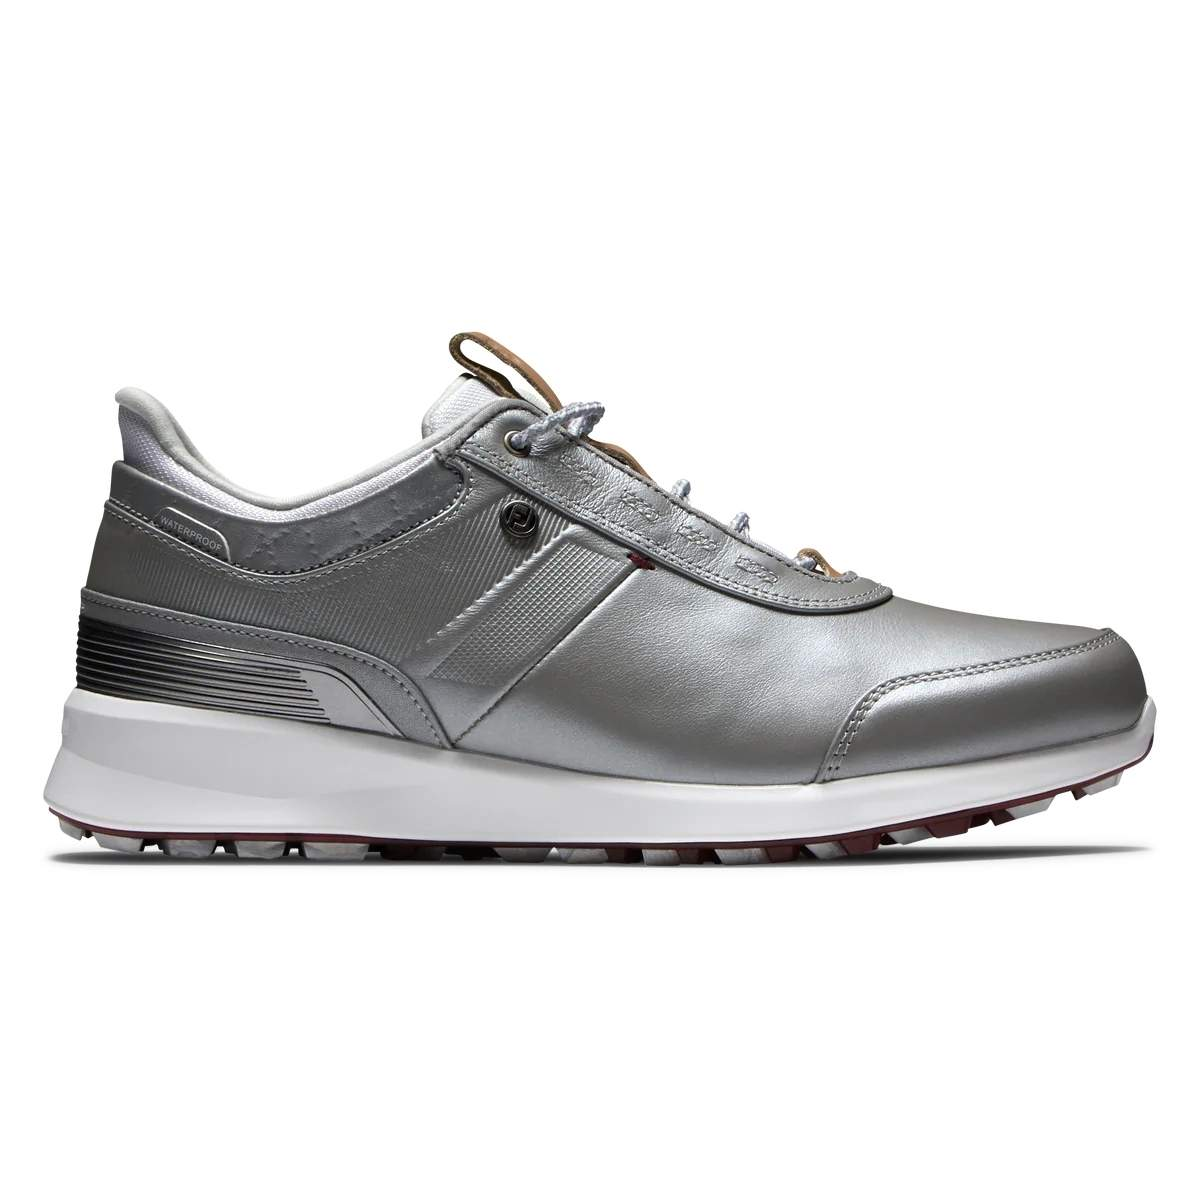 FootJoy Women's Stratos Golf Shoe - Silver 90113